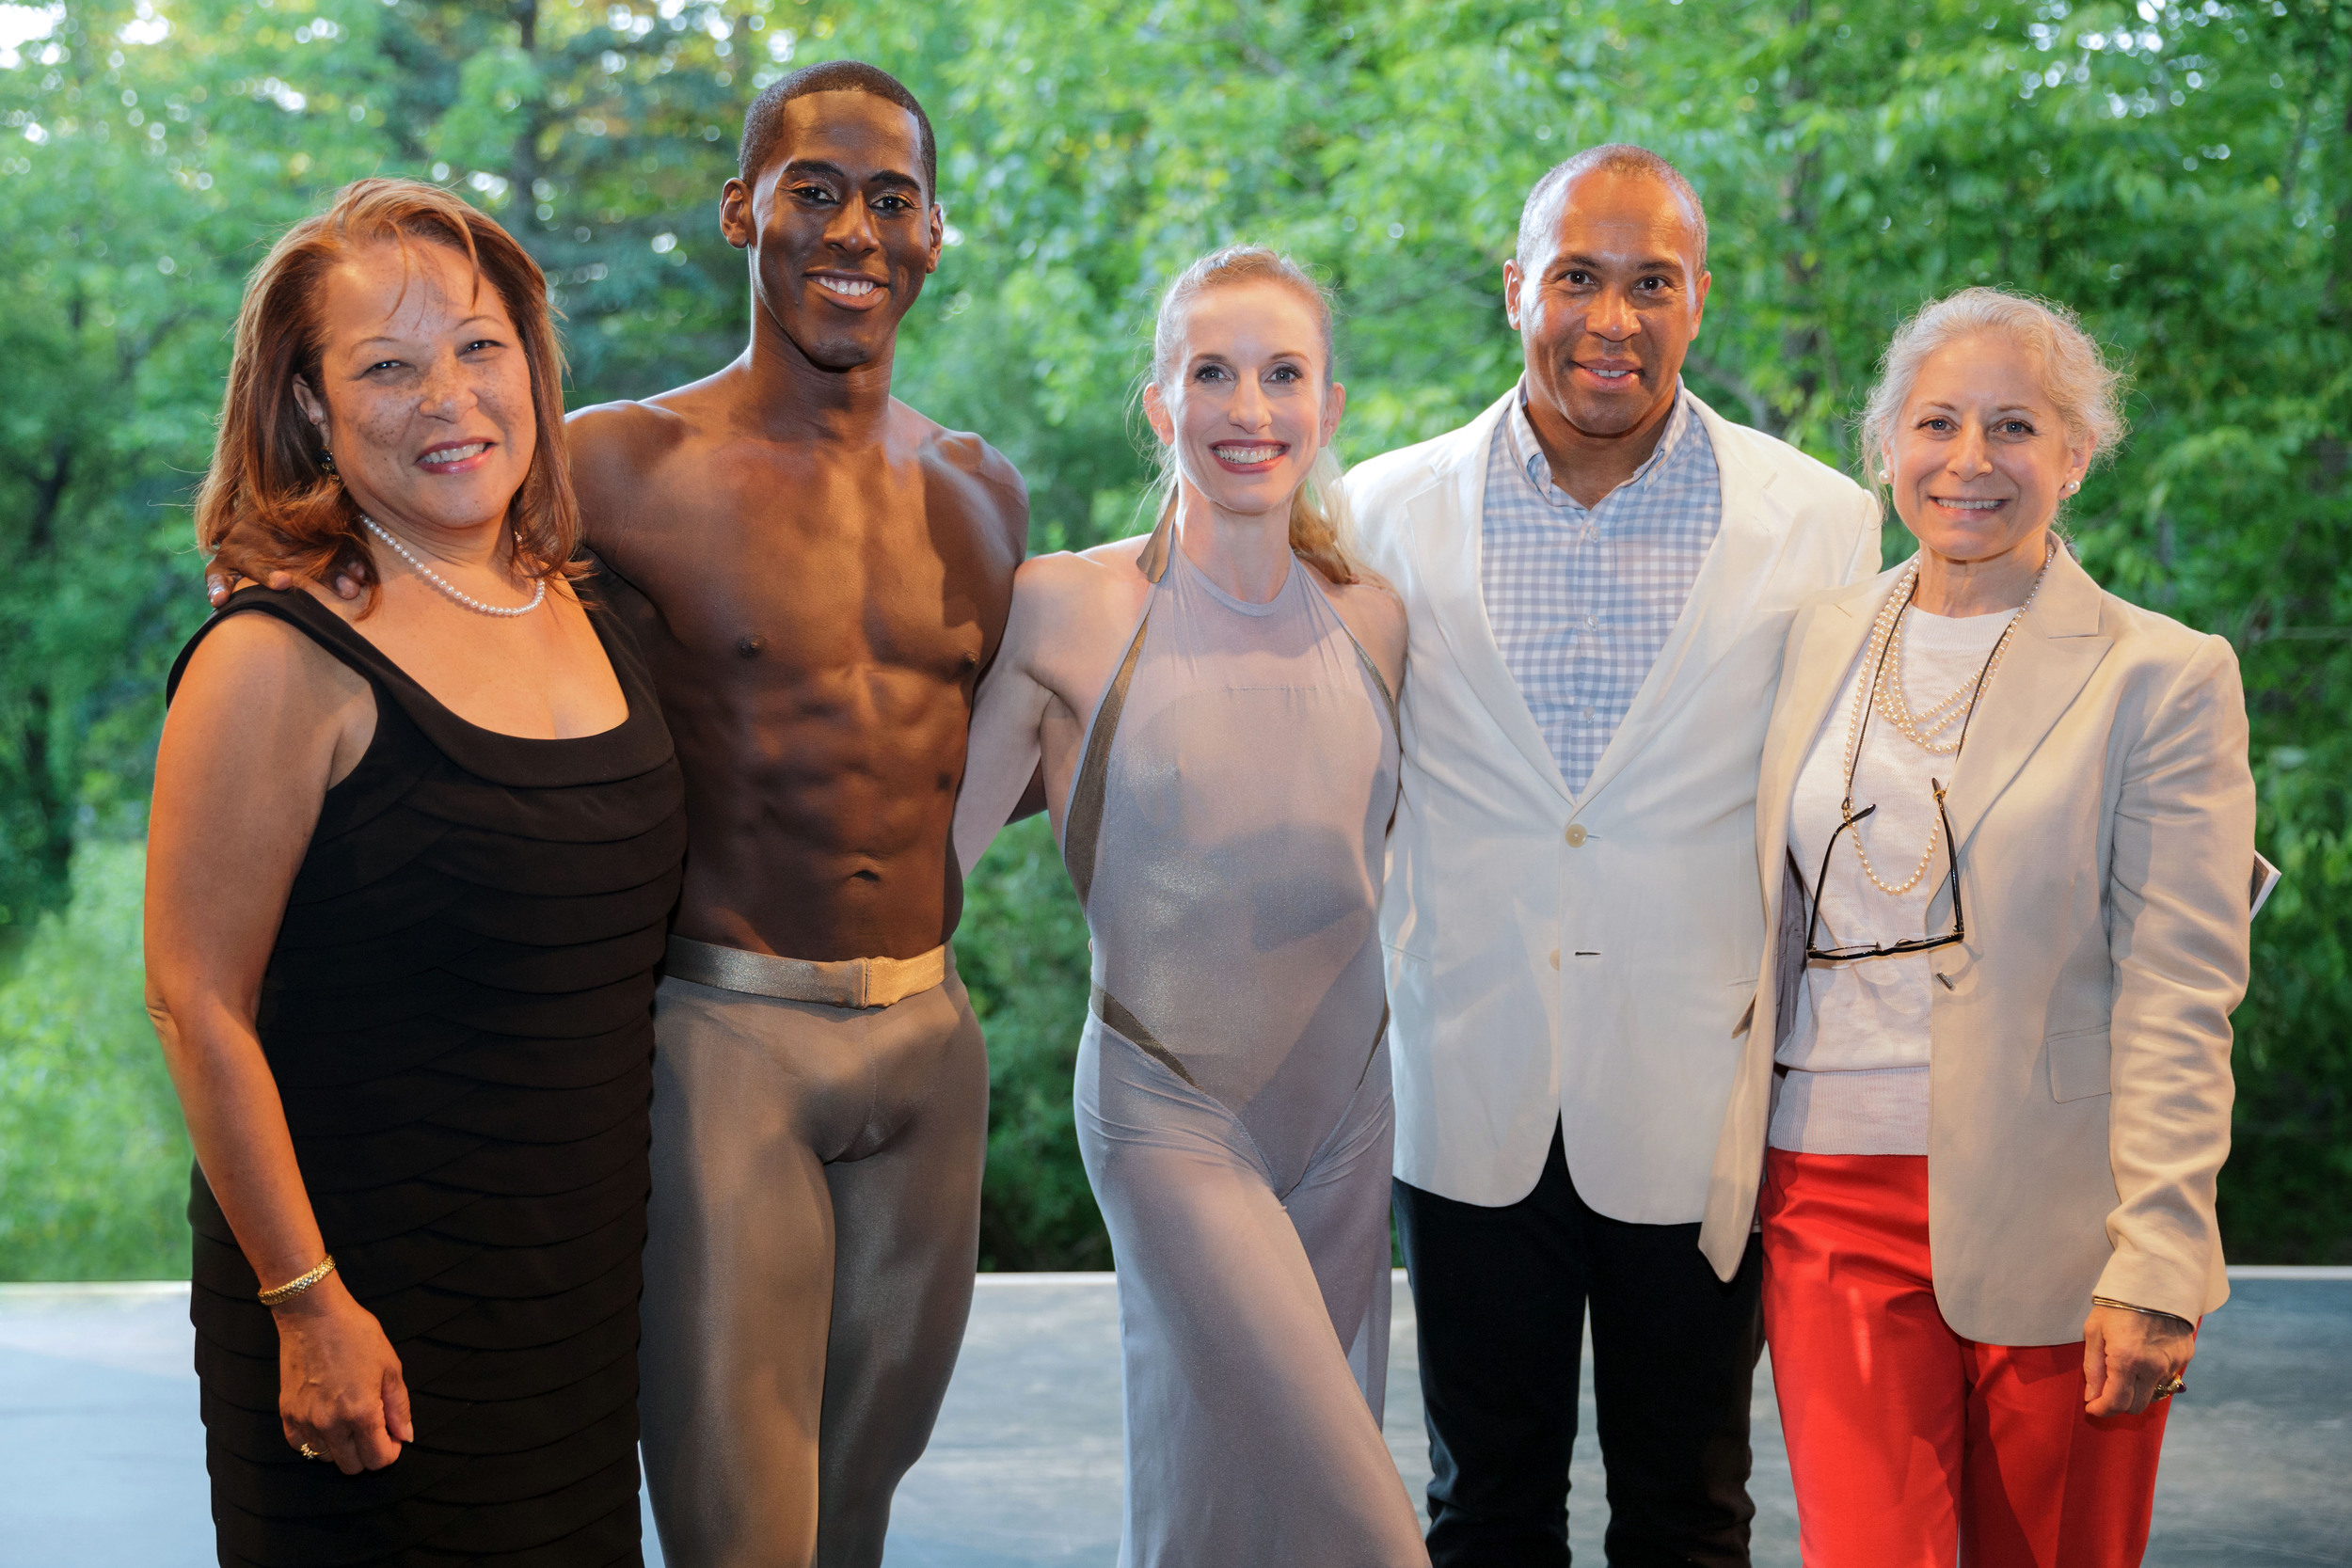 PHOTO CAPTION: First Lady Diane Patrick and Governor of Massachusetts Deval Patrick   backstage with Jacob's Pillow Executive and Artistic Director Ella Baff, New York City   Ballet star Wendy Whelan, soloist with the Martha Graham Dance Company Lloyd   Knight. Photographer Karli Cadel; Courtesy of Jacob's Pillow Dance